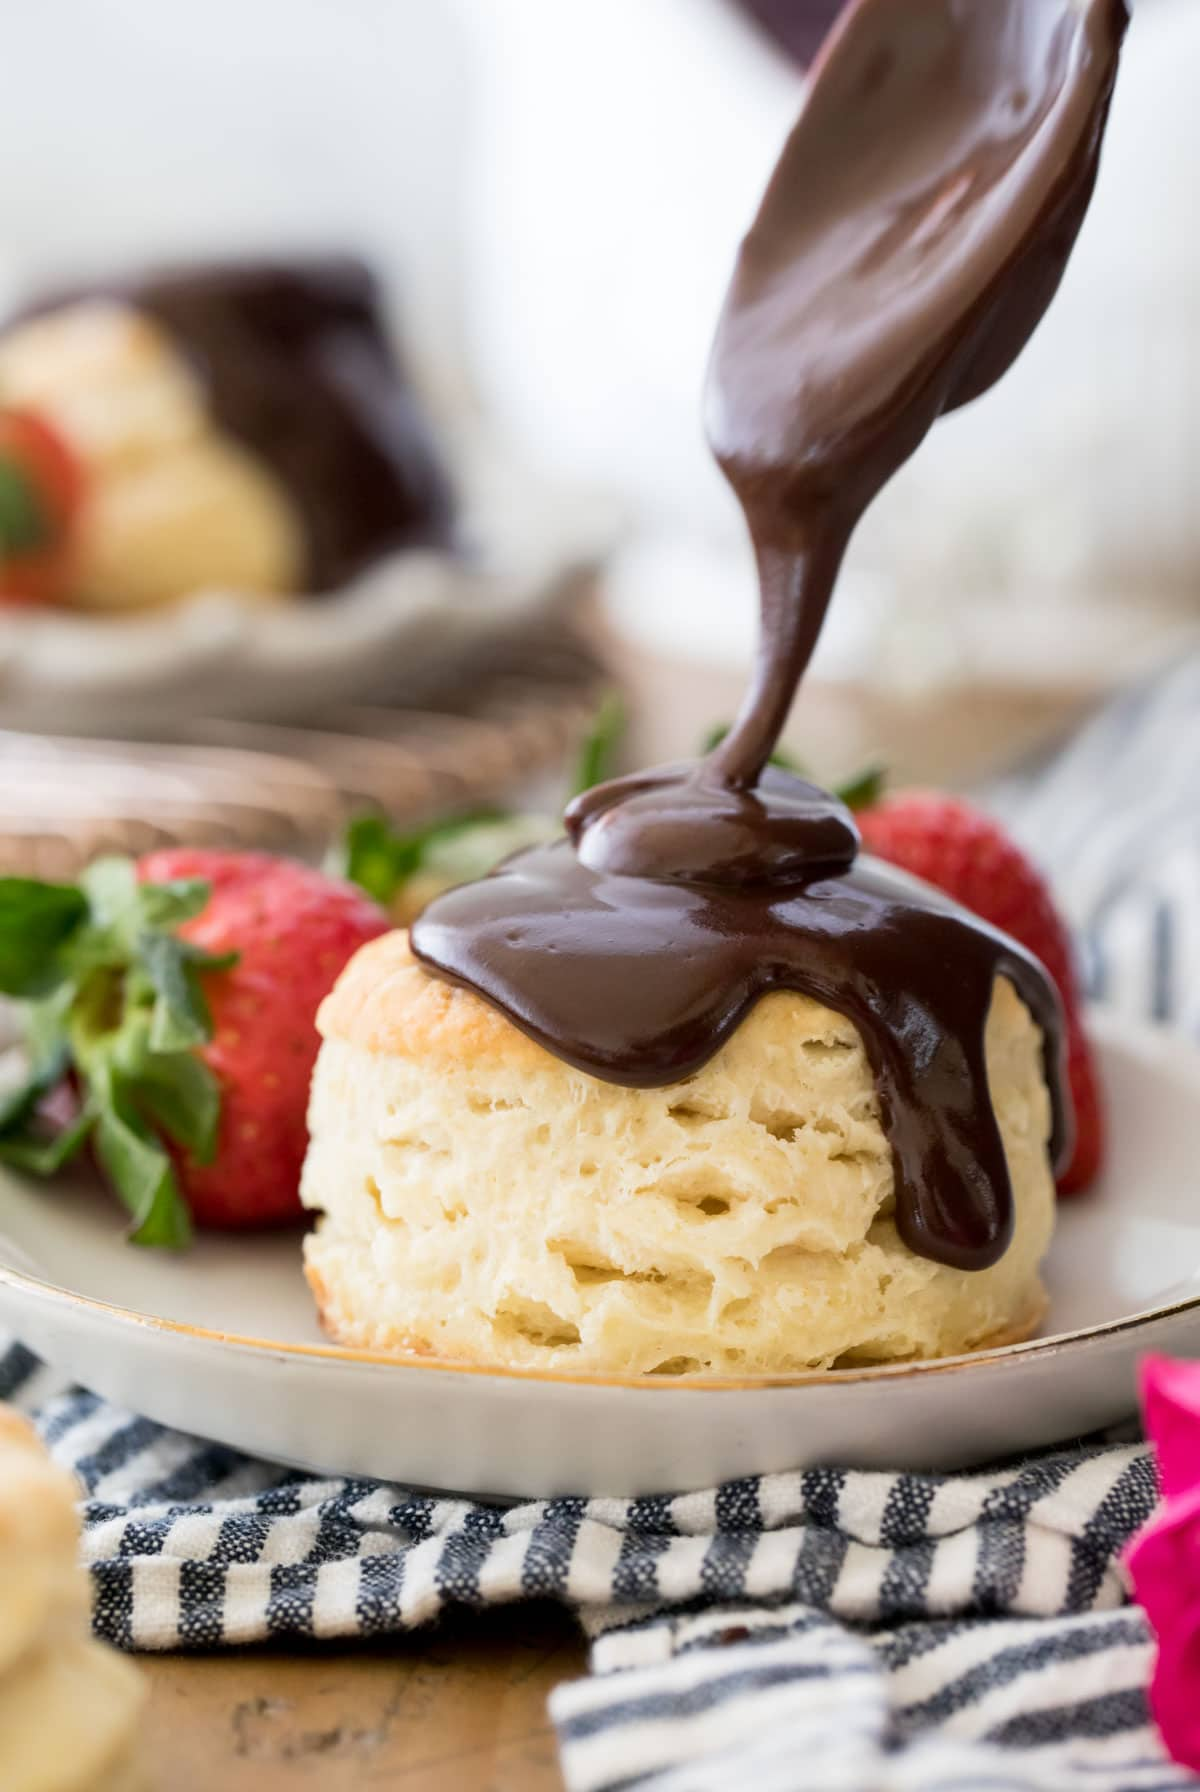 Pouring chocolate gravy over a biscuit